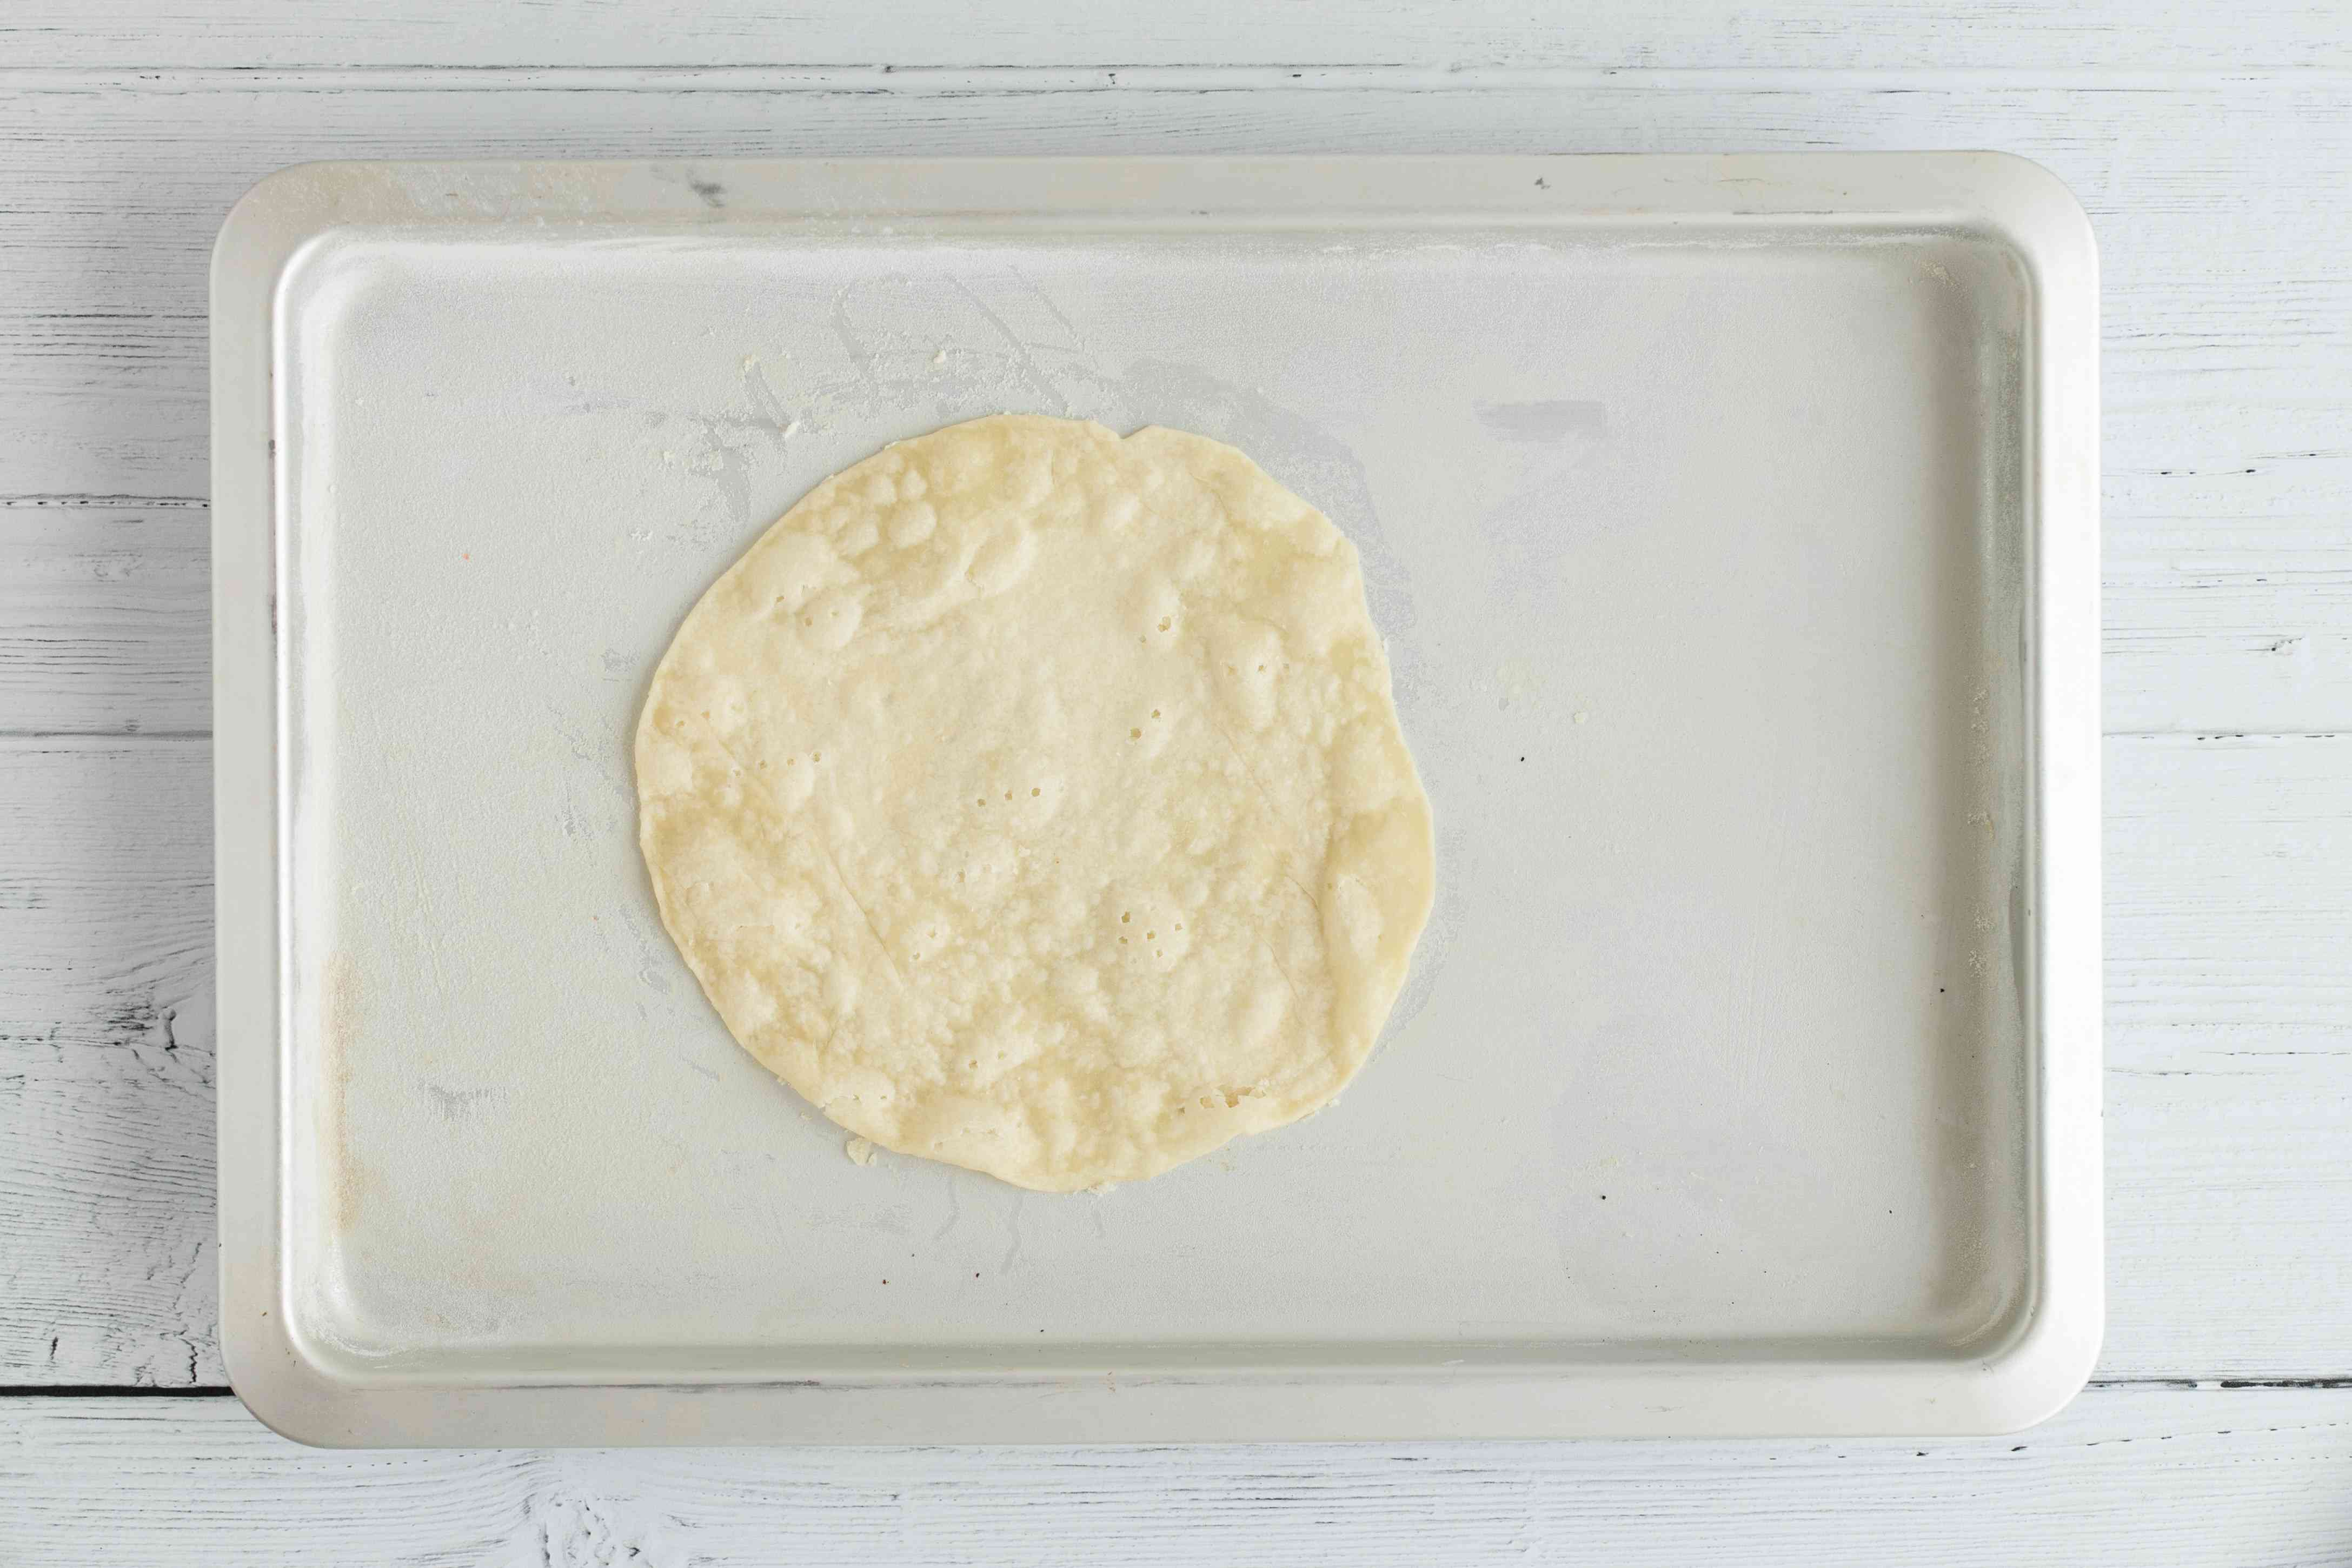 Baked pastry round on a baking sheet